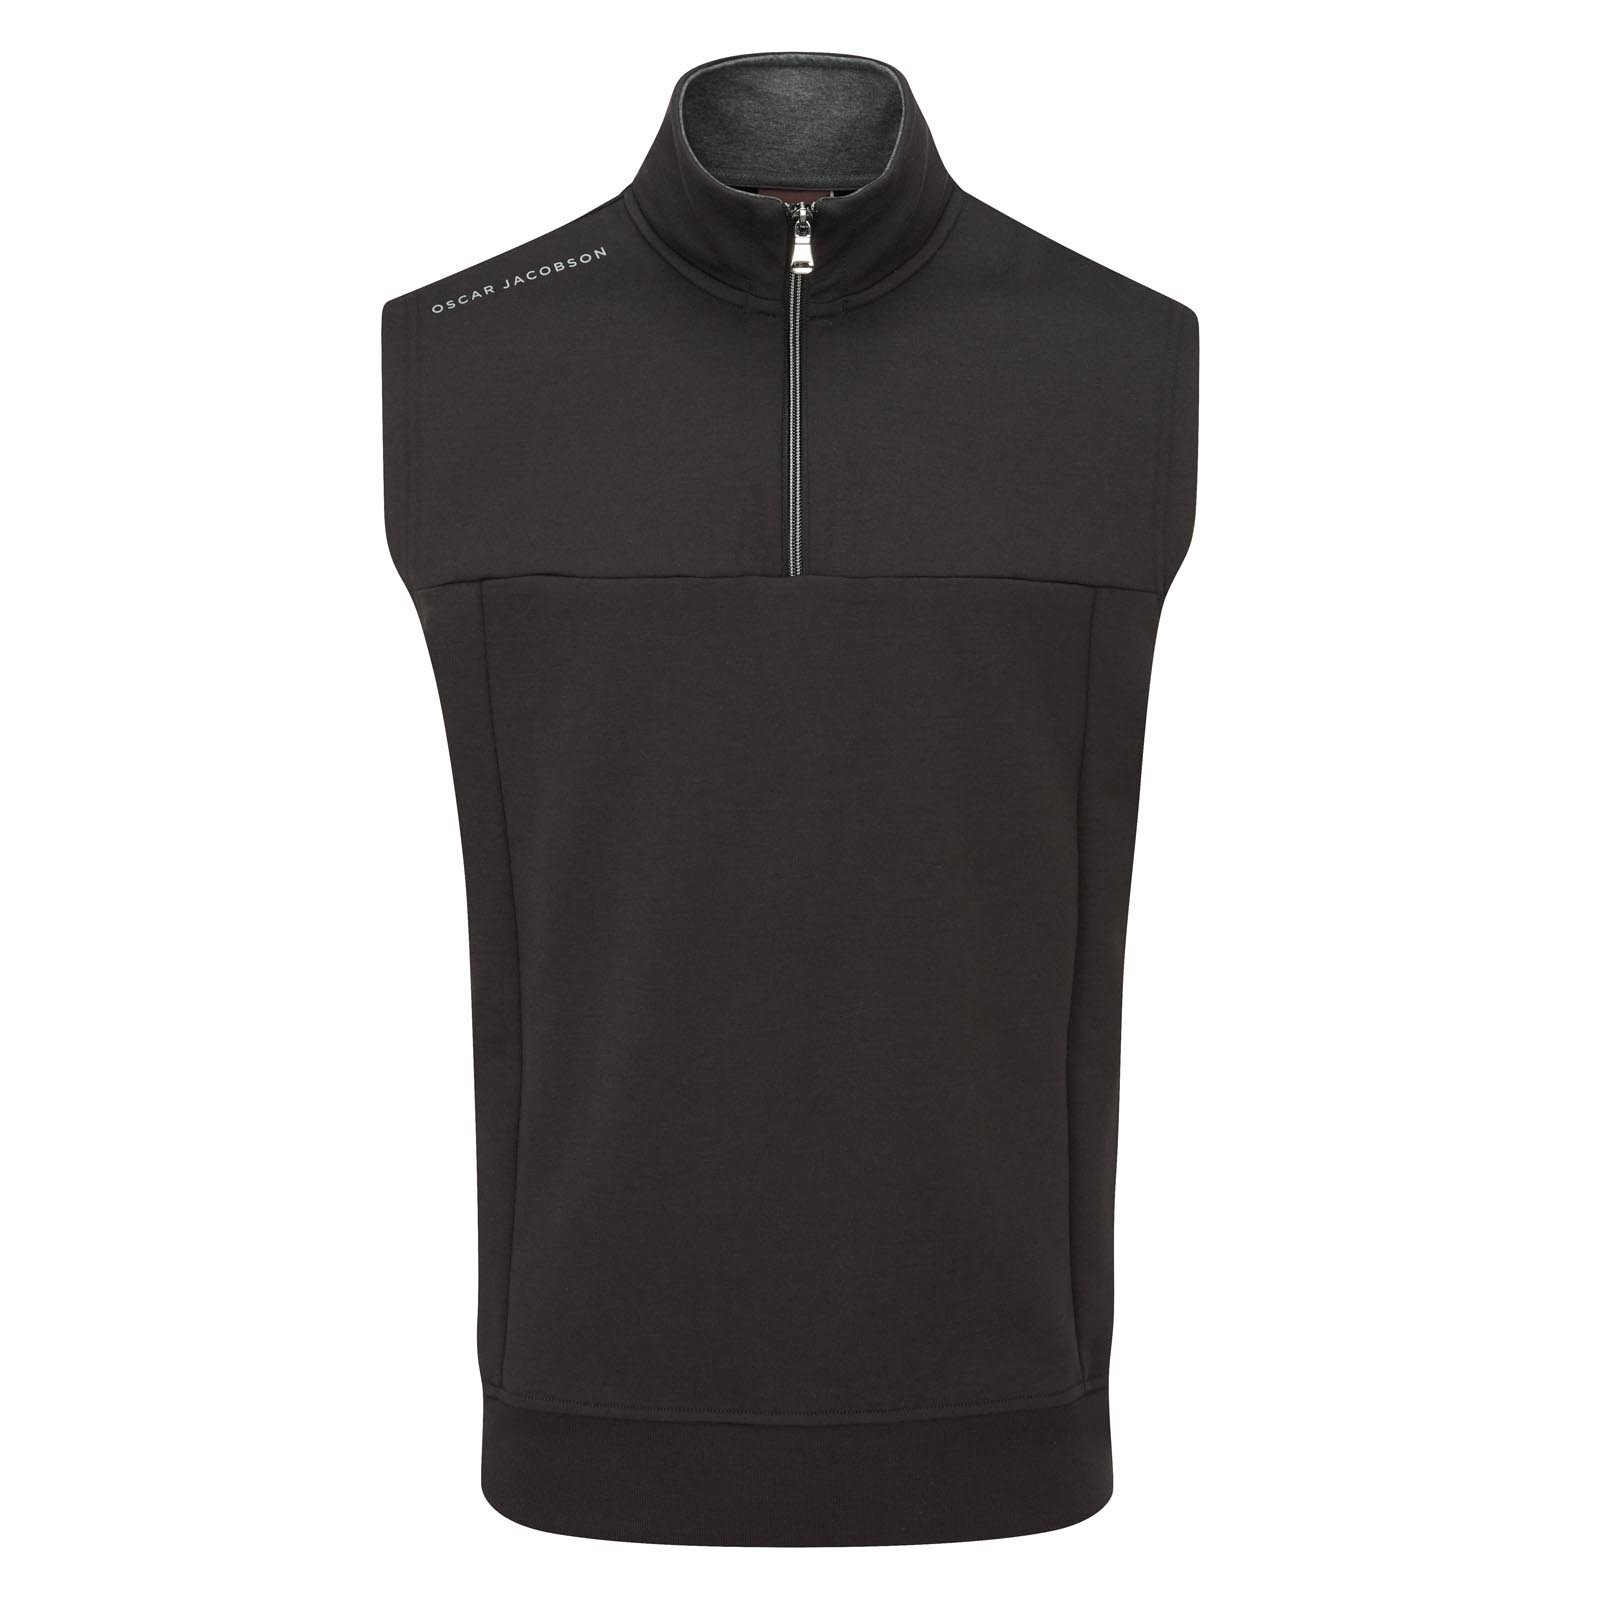 Oscar Jacobson Hawkes Sleeveless Vests